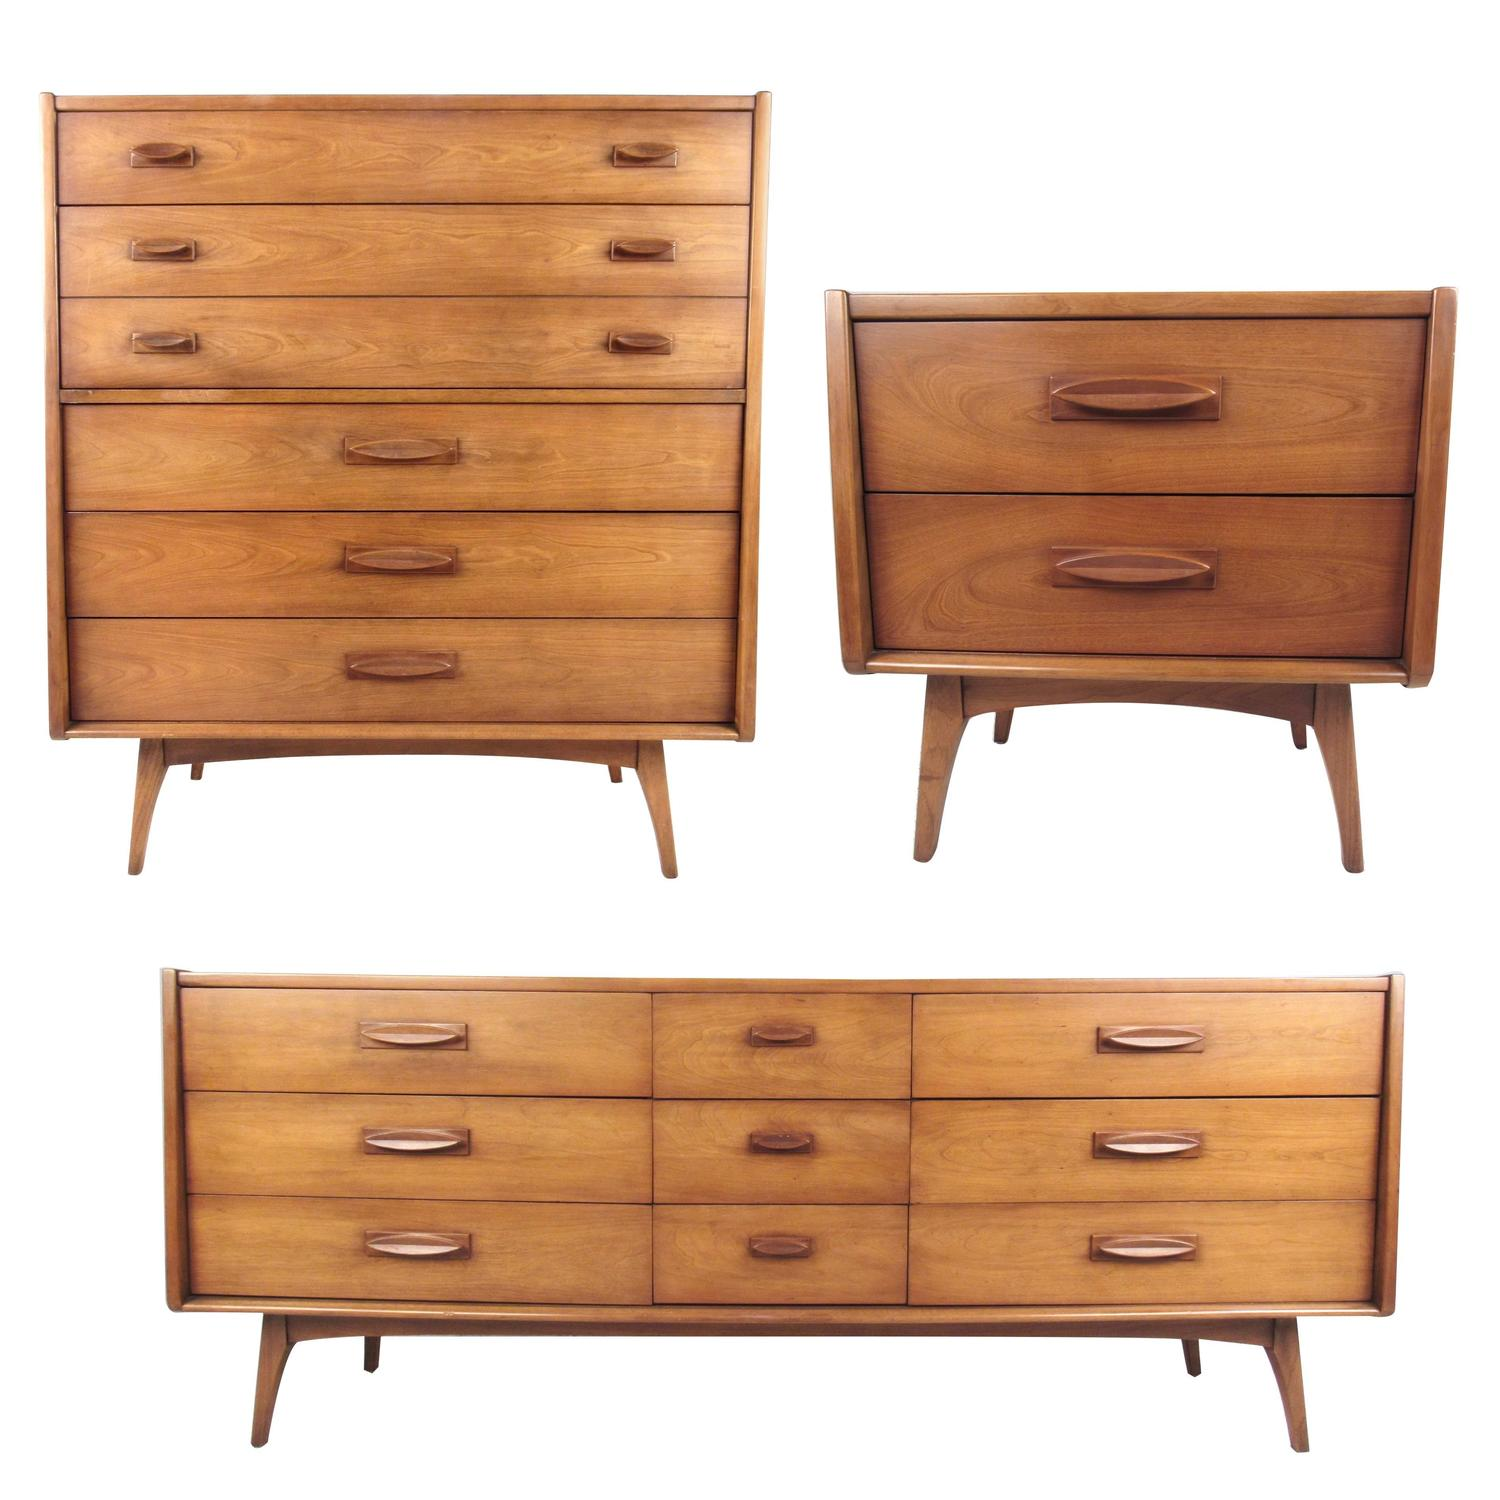 4 Piece Mid Century Modern Bedroom Set - 4 For Sale on 4stdibs